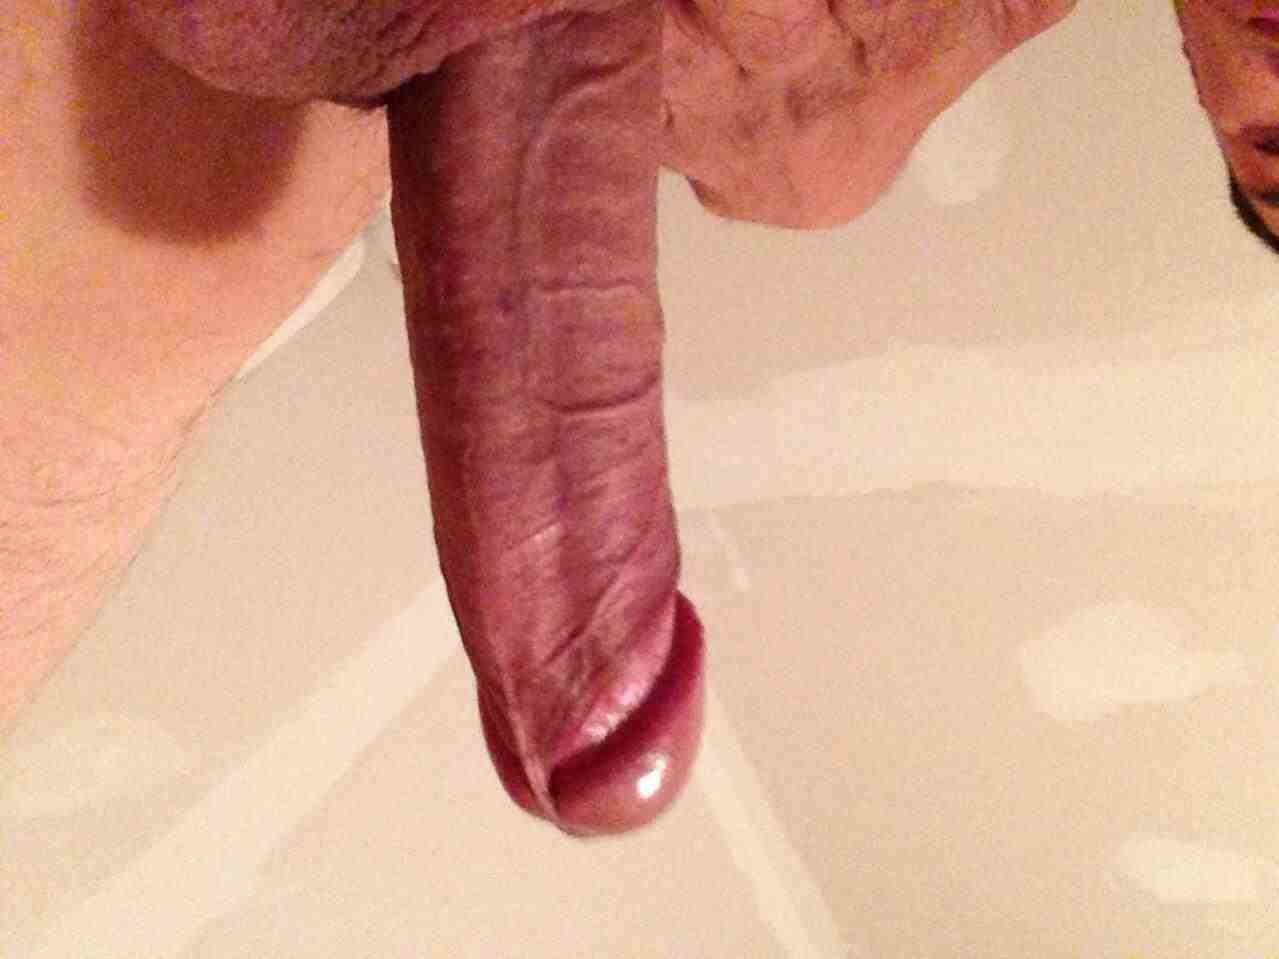 Wife catches husband fucking maid Nude petit hot asians Husband share wife and loves his m8 big cock more tjen